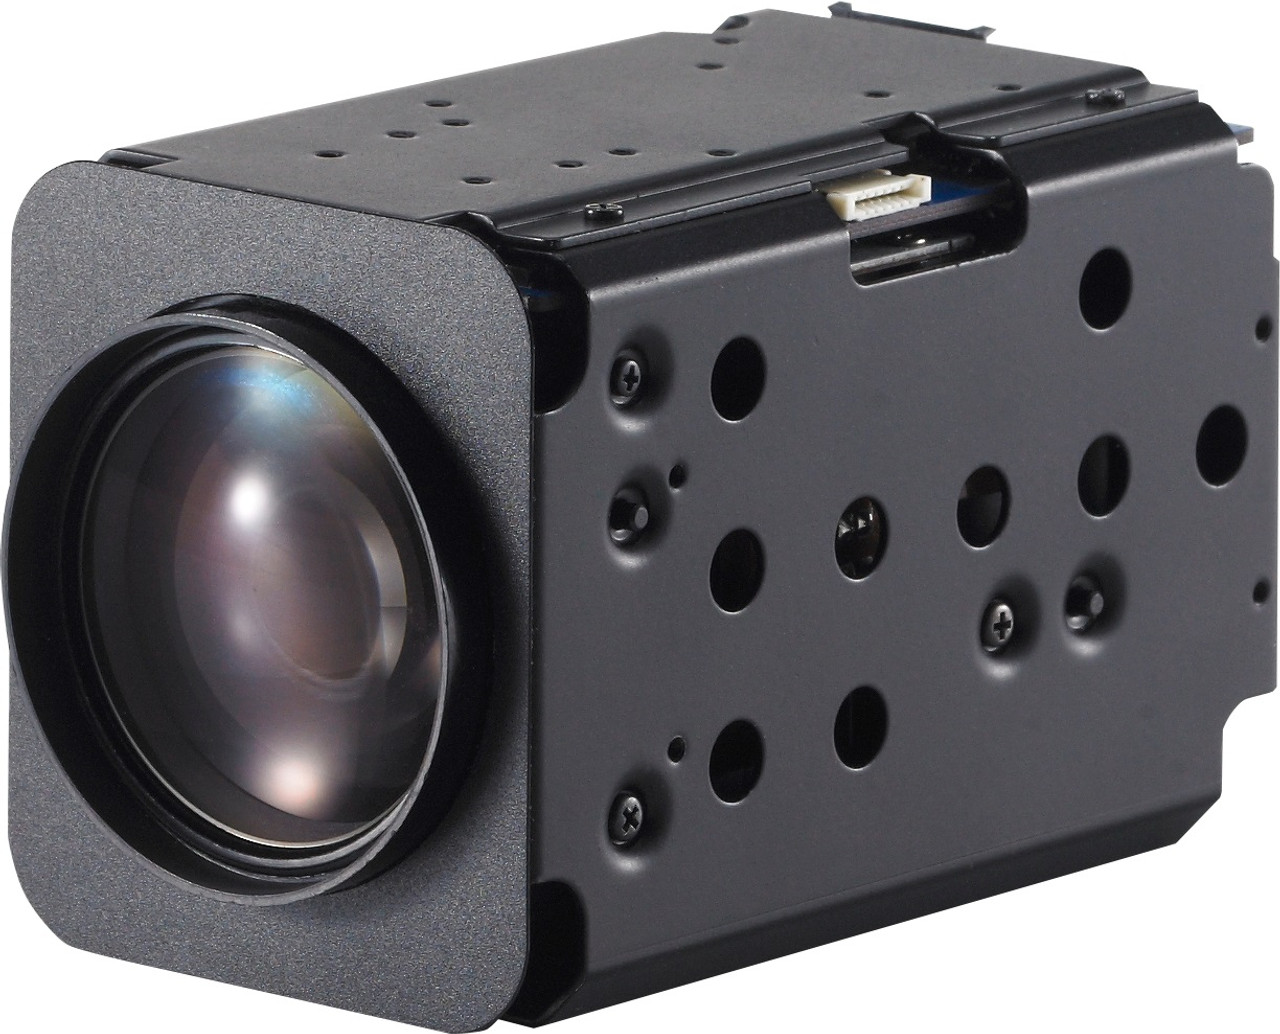 """BMC-S129 1/2"""" 2 megapixel (Sony IMX385) IP and EX-SDI Day/Night Camera with 12x Optical Zoom Module"""